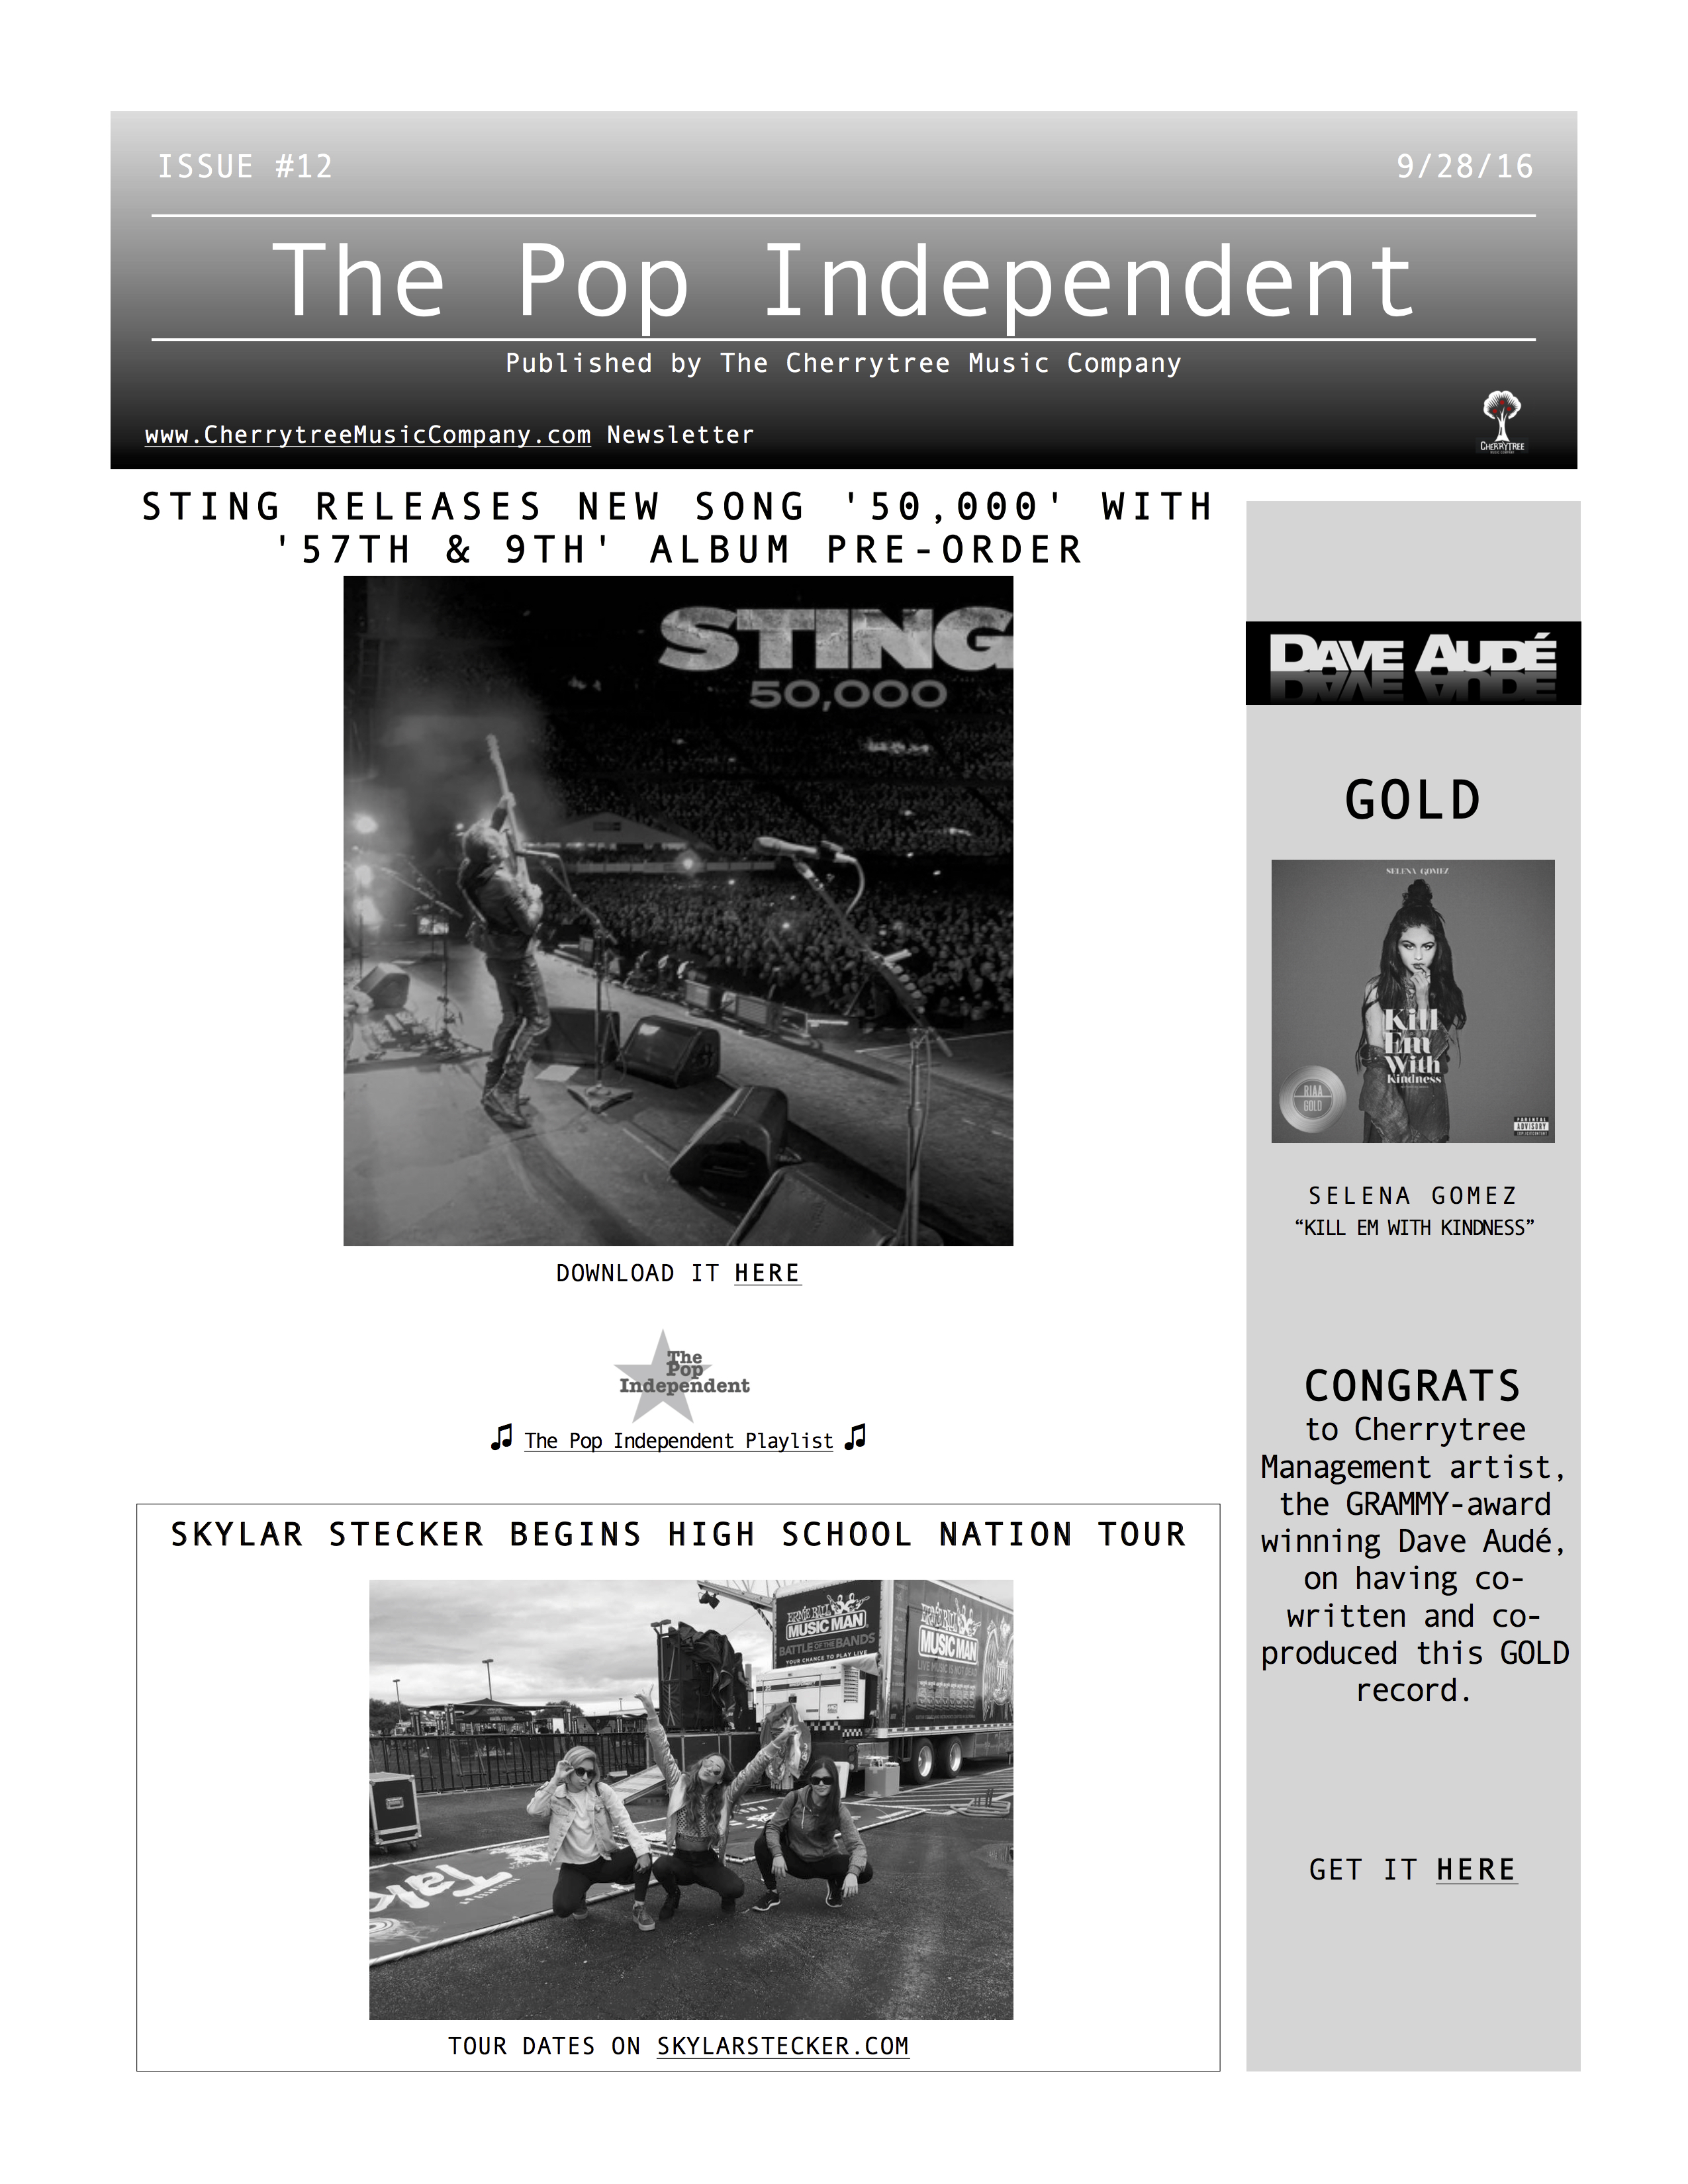 The Pop Independent, issue 12